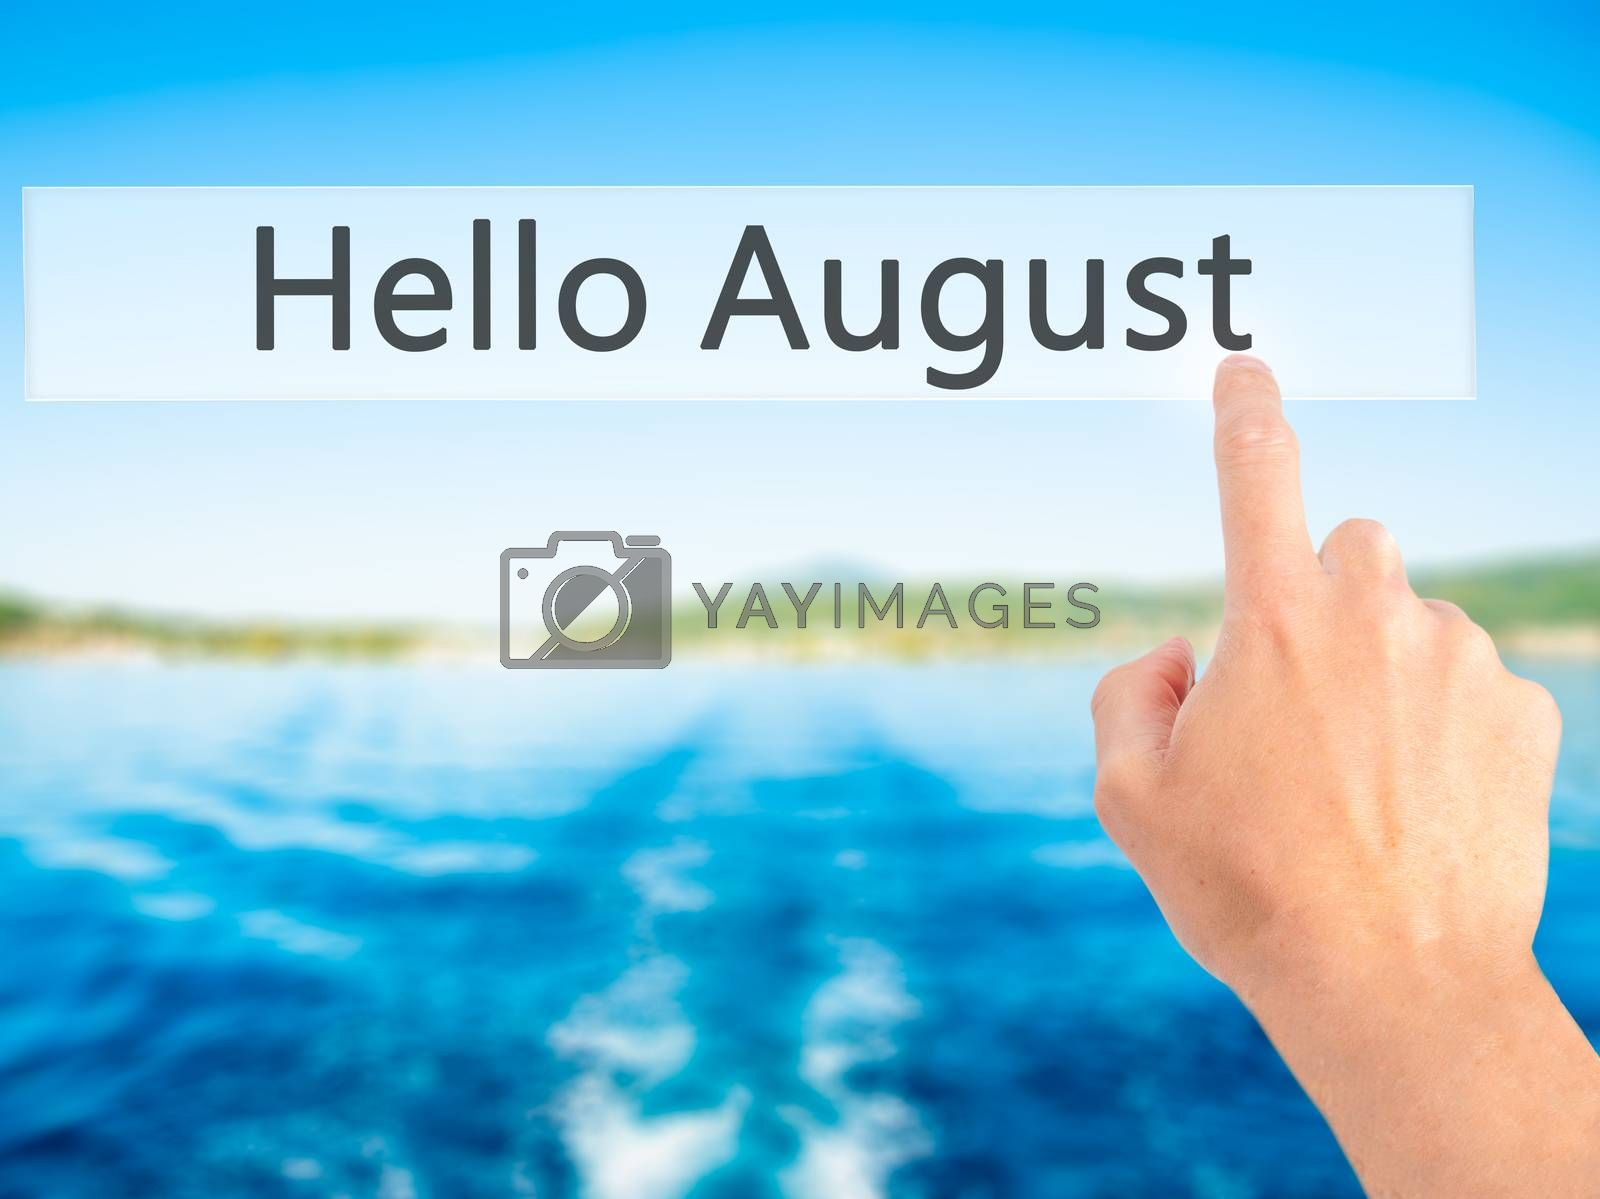 Hello August - Hand pressing a button on blurred background conc by jackald